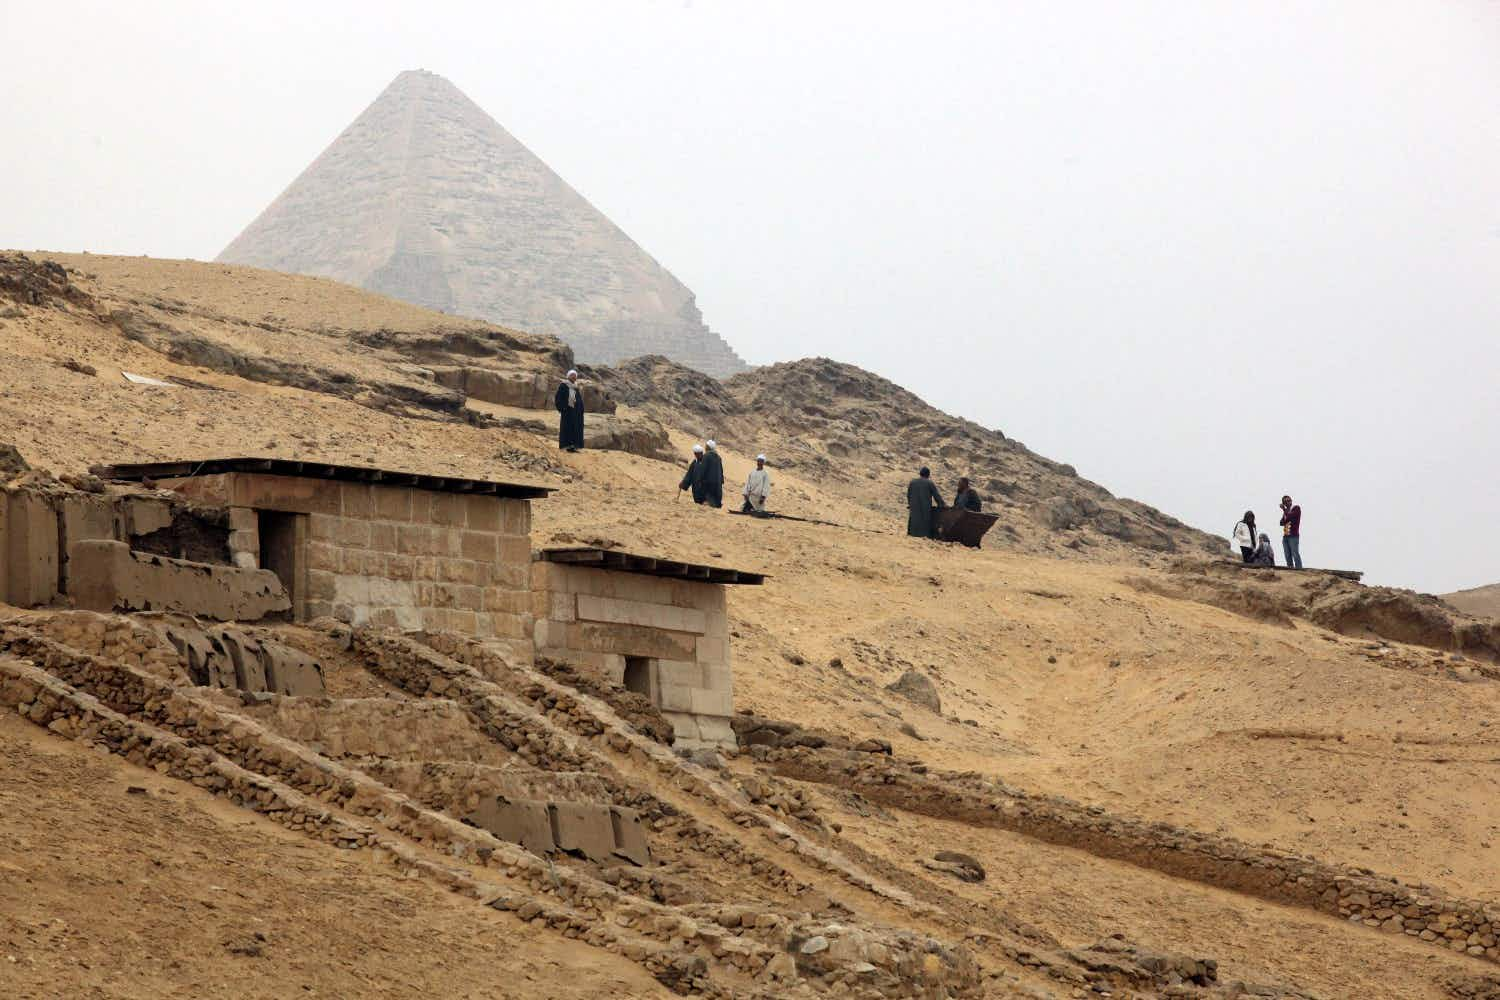 The 'cursed tombs' of Egypt are opening to the public for the first time